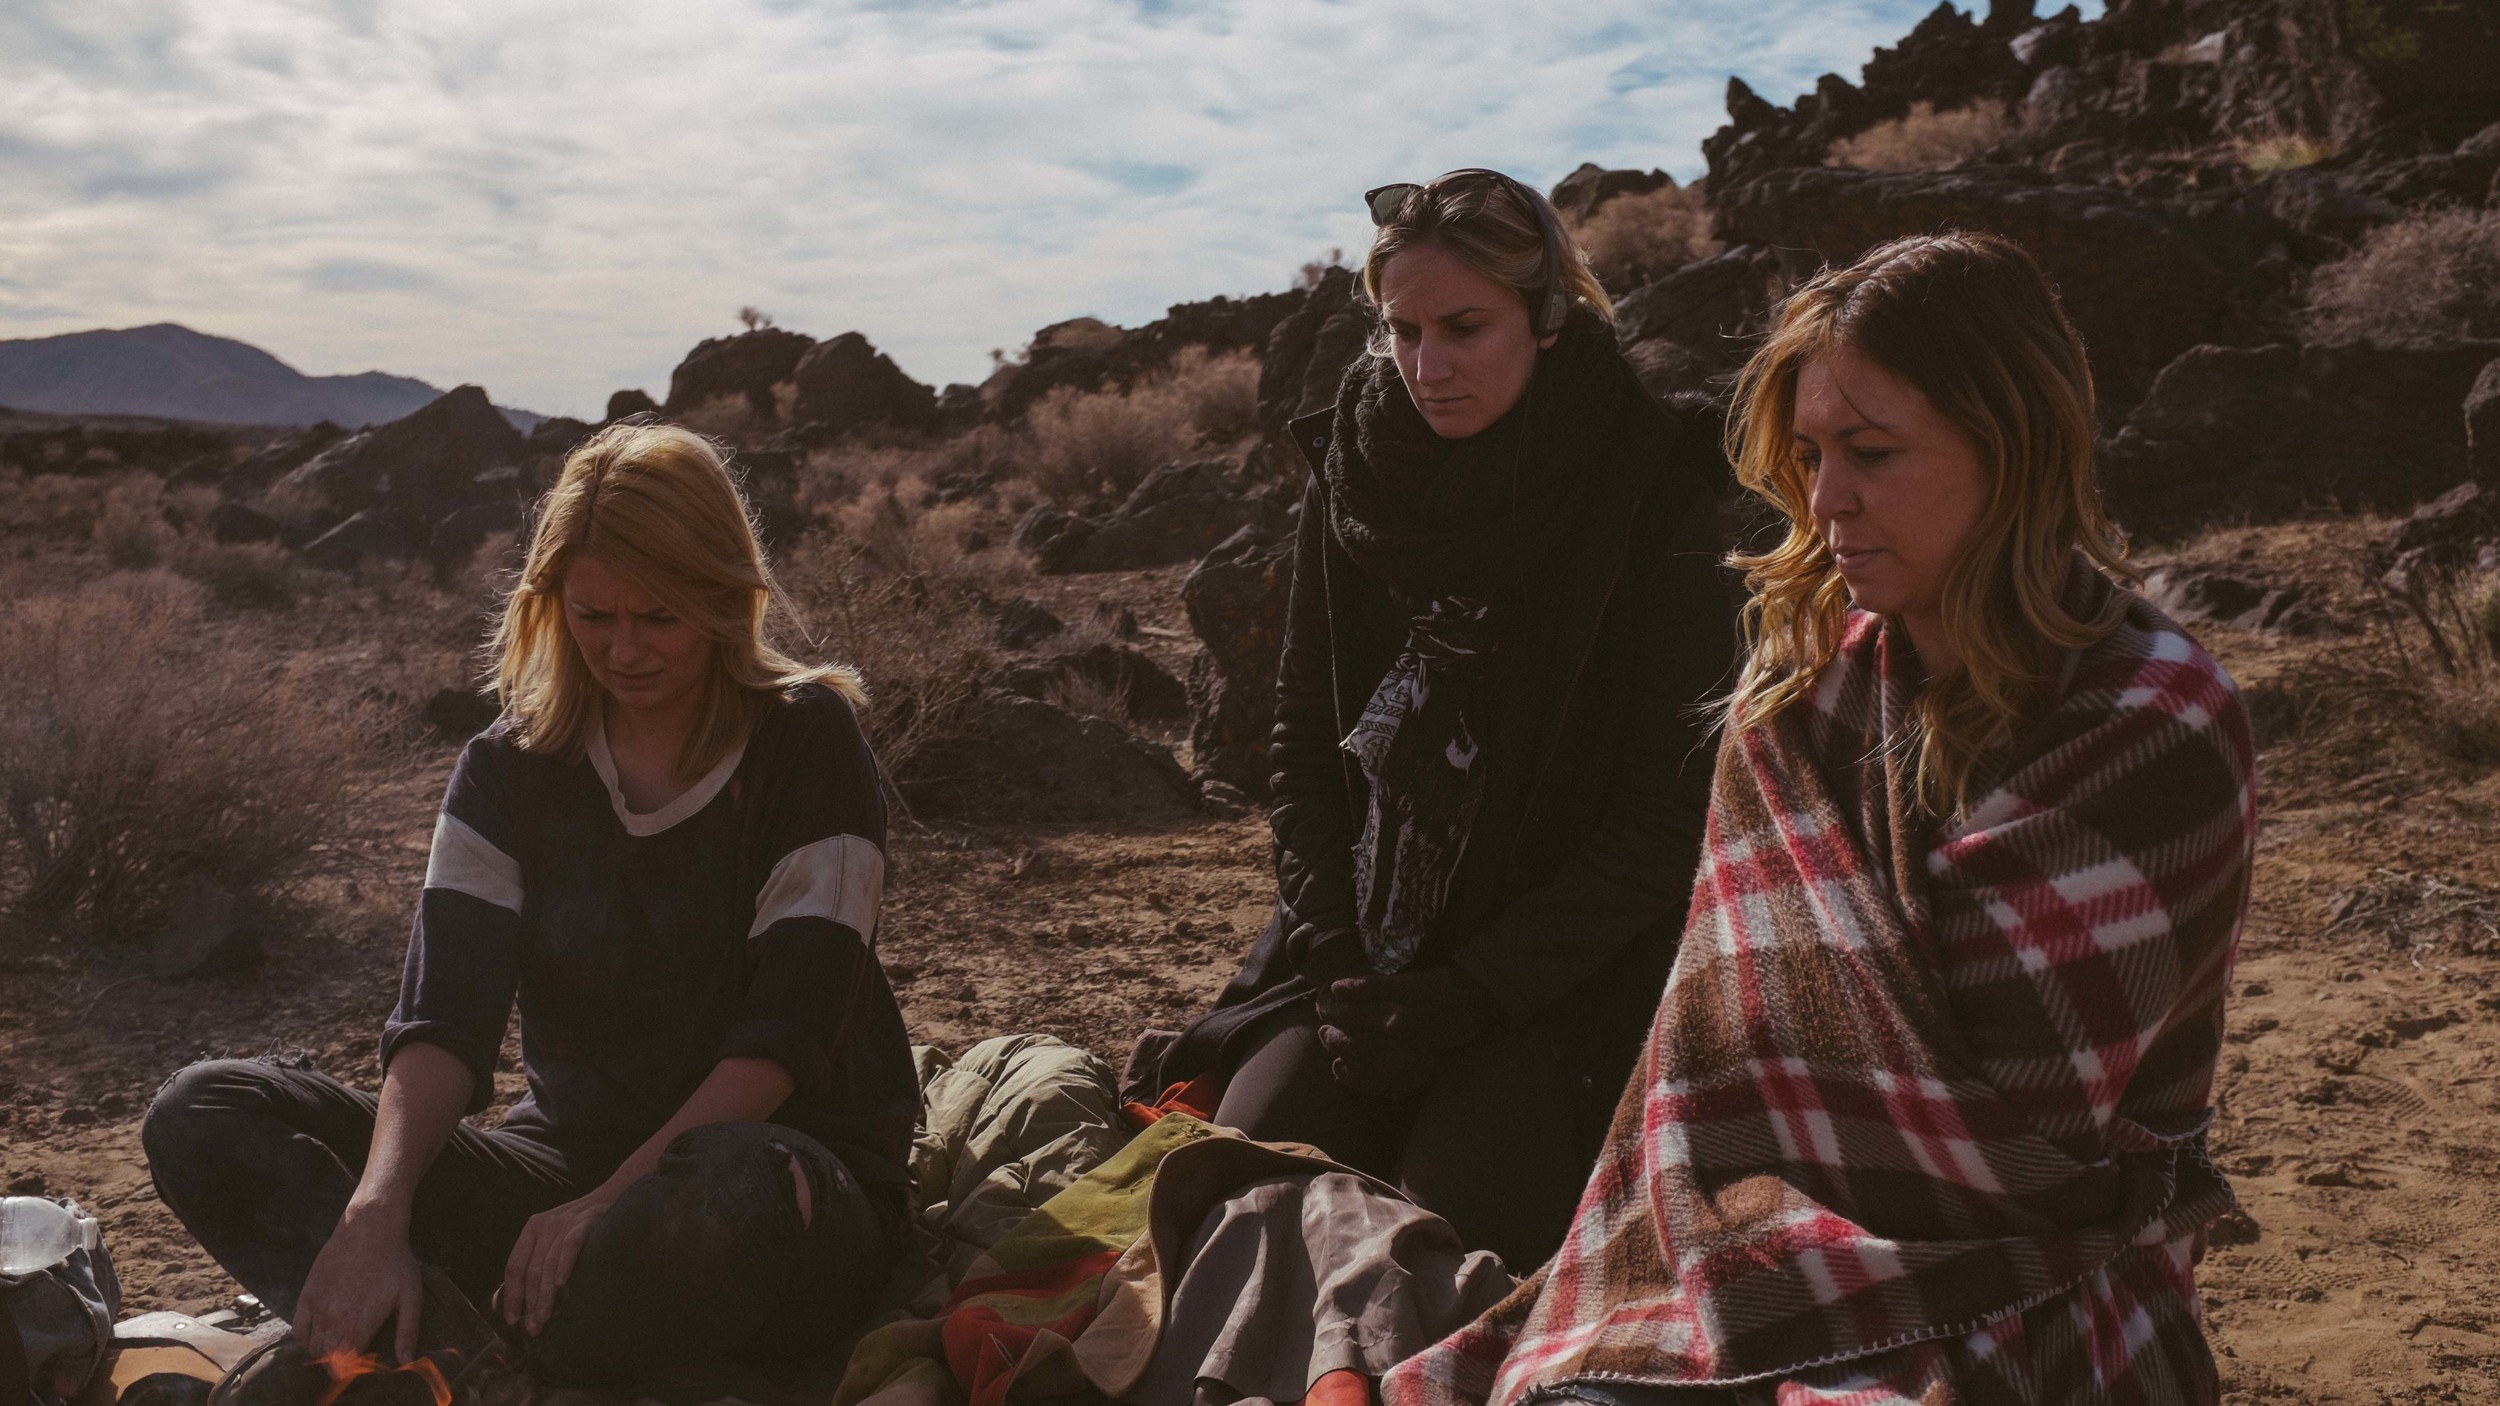 'Deserted' Behind the Scenes L to R- Mischa Barton, Director Ashley Avis and Dana Rosendorff.jpg